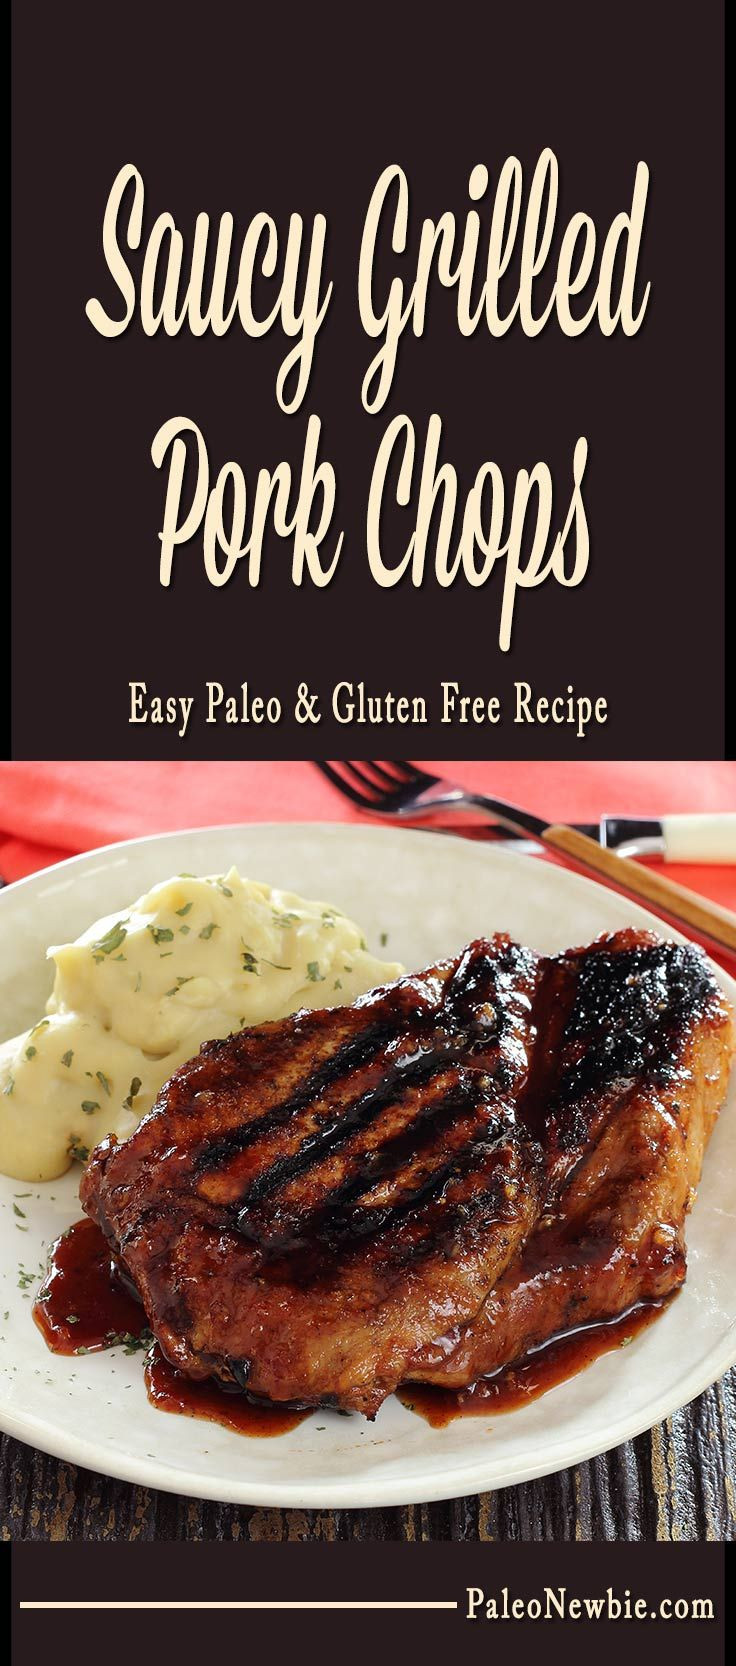 How To Grill Boneless Pork Chops  Saucy Grilled Paleo Pork Chops Recipe